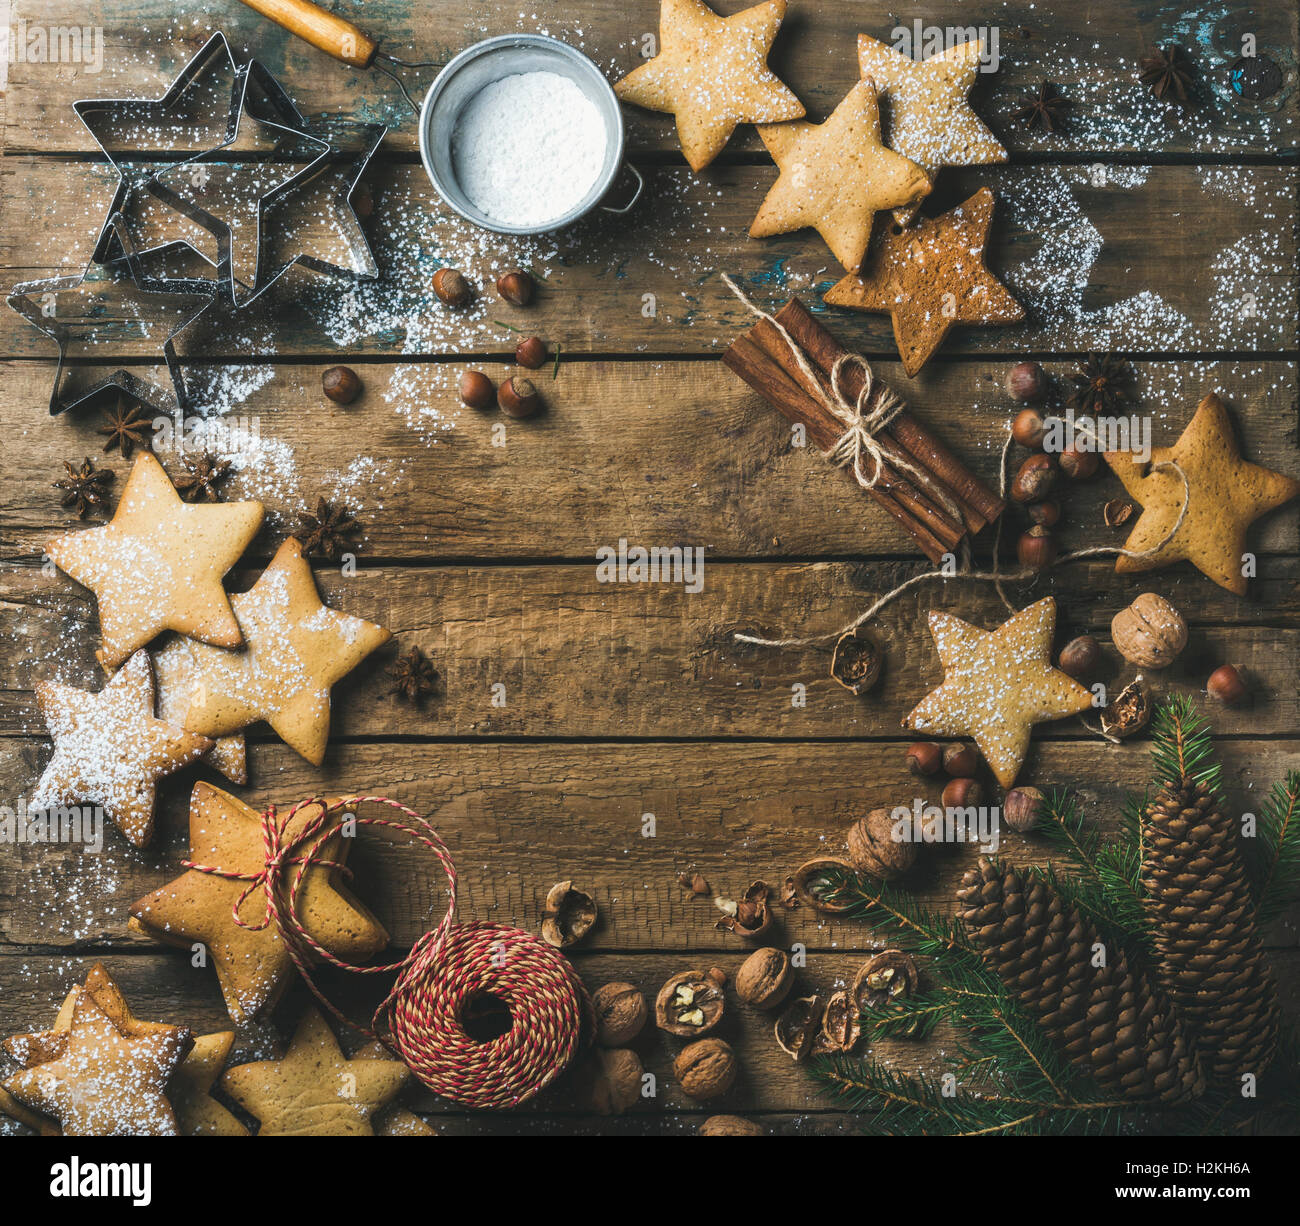 Christmas or new year holiday food and decoration background. Star shaped sweet gingerbread cookies with sugar powder, - Stock Image